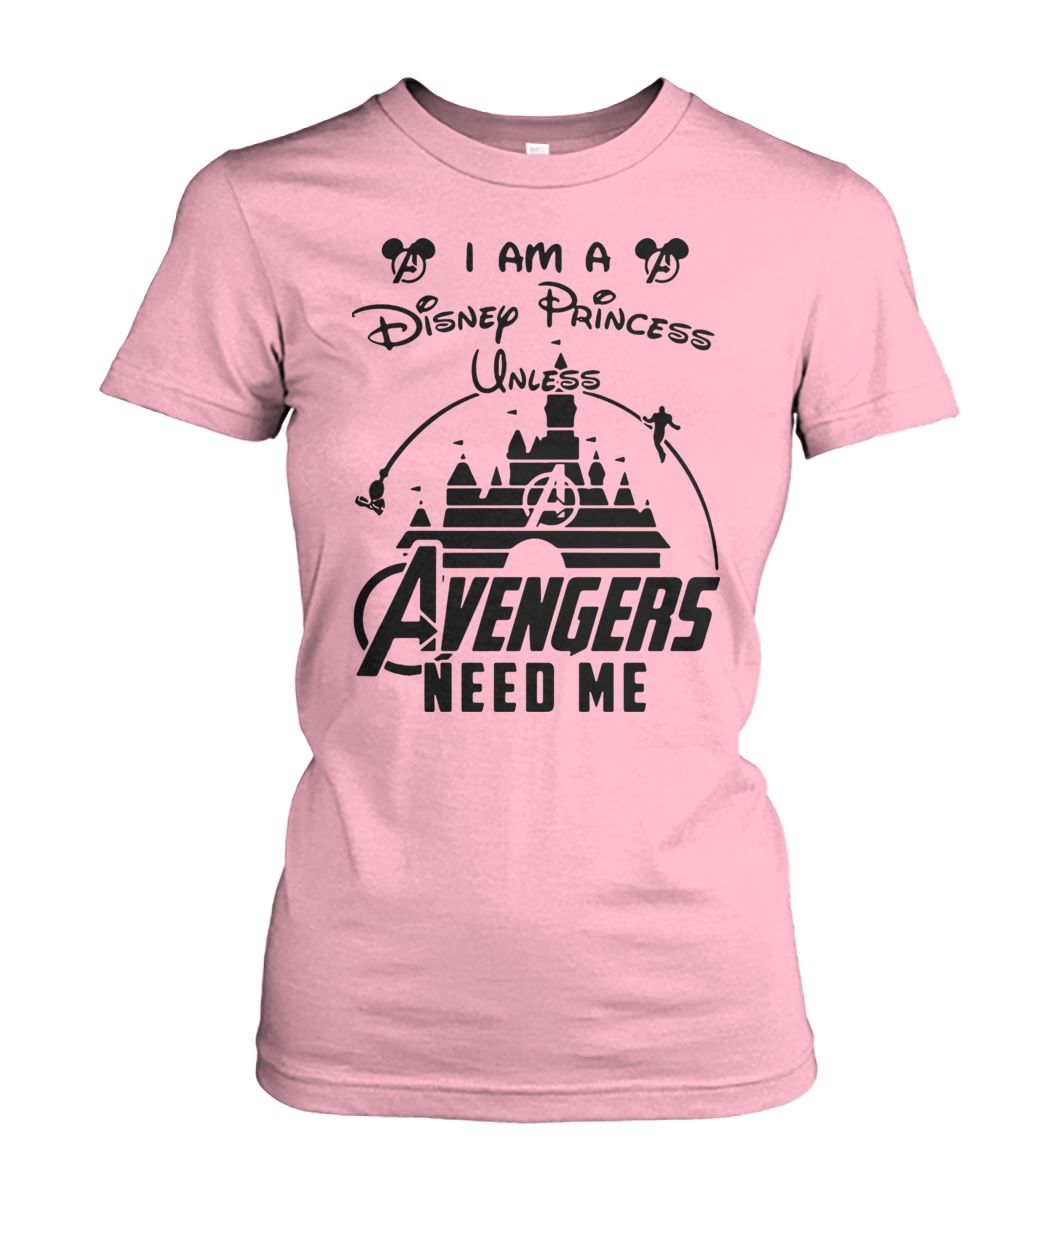 [Hot version] I am a disney princess unless avengers need me shirt